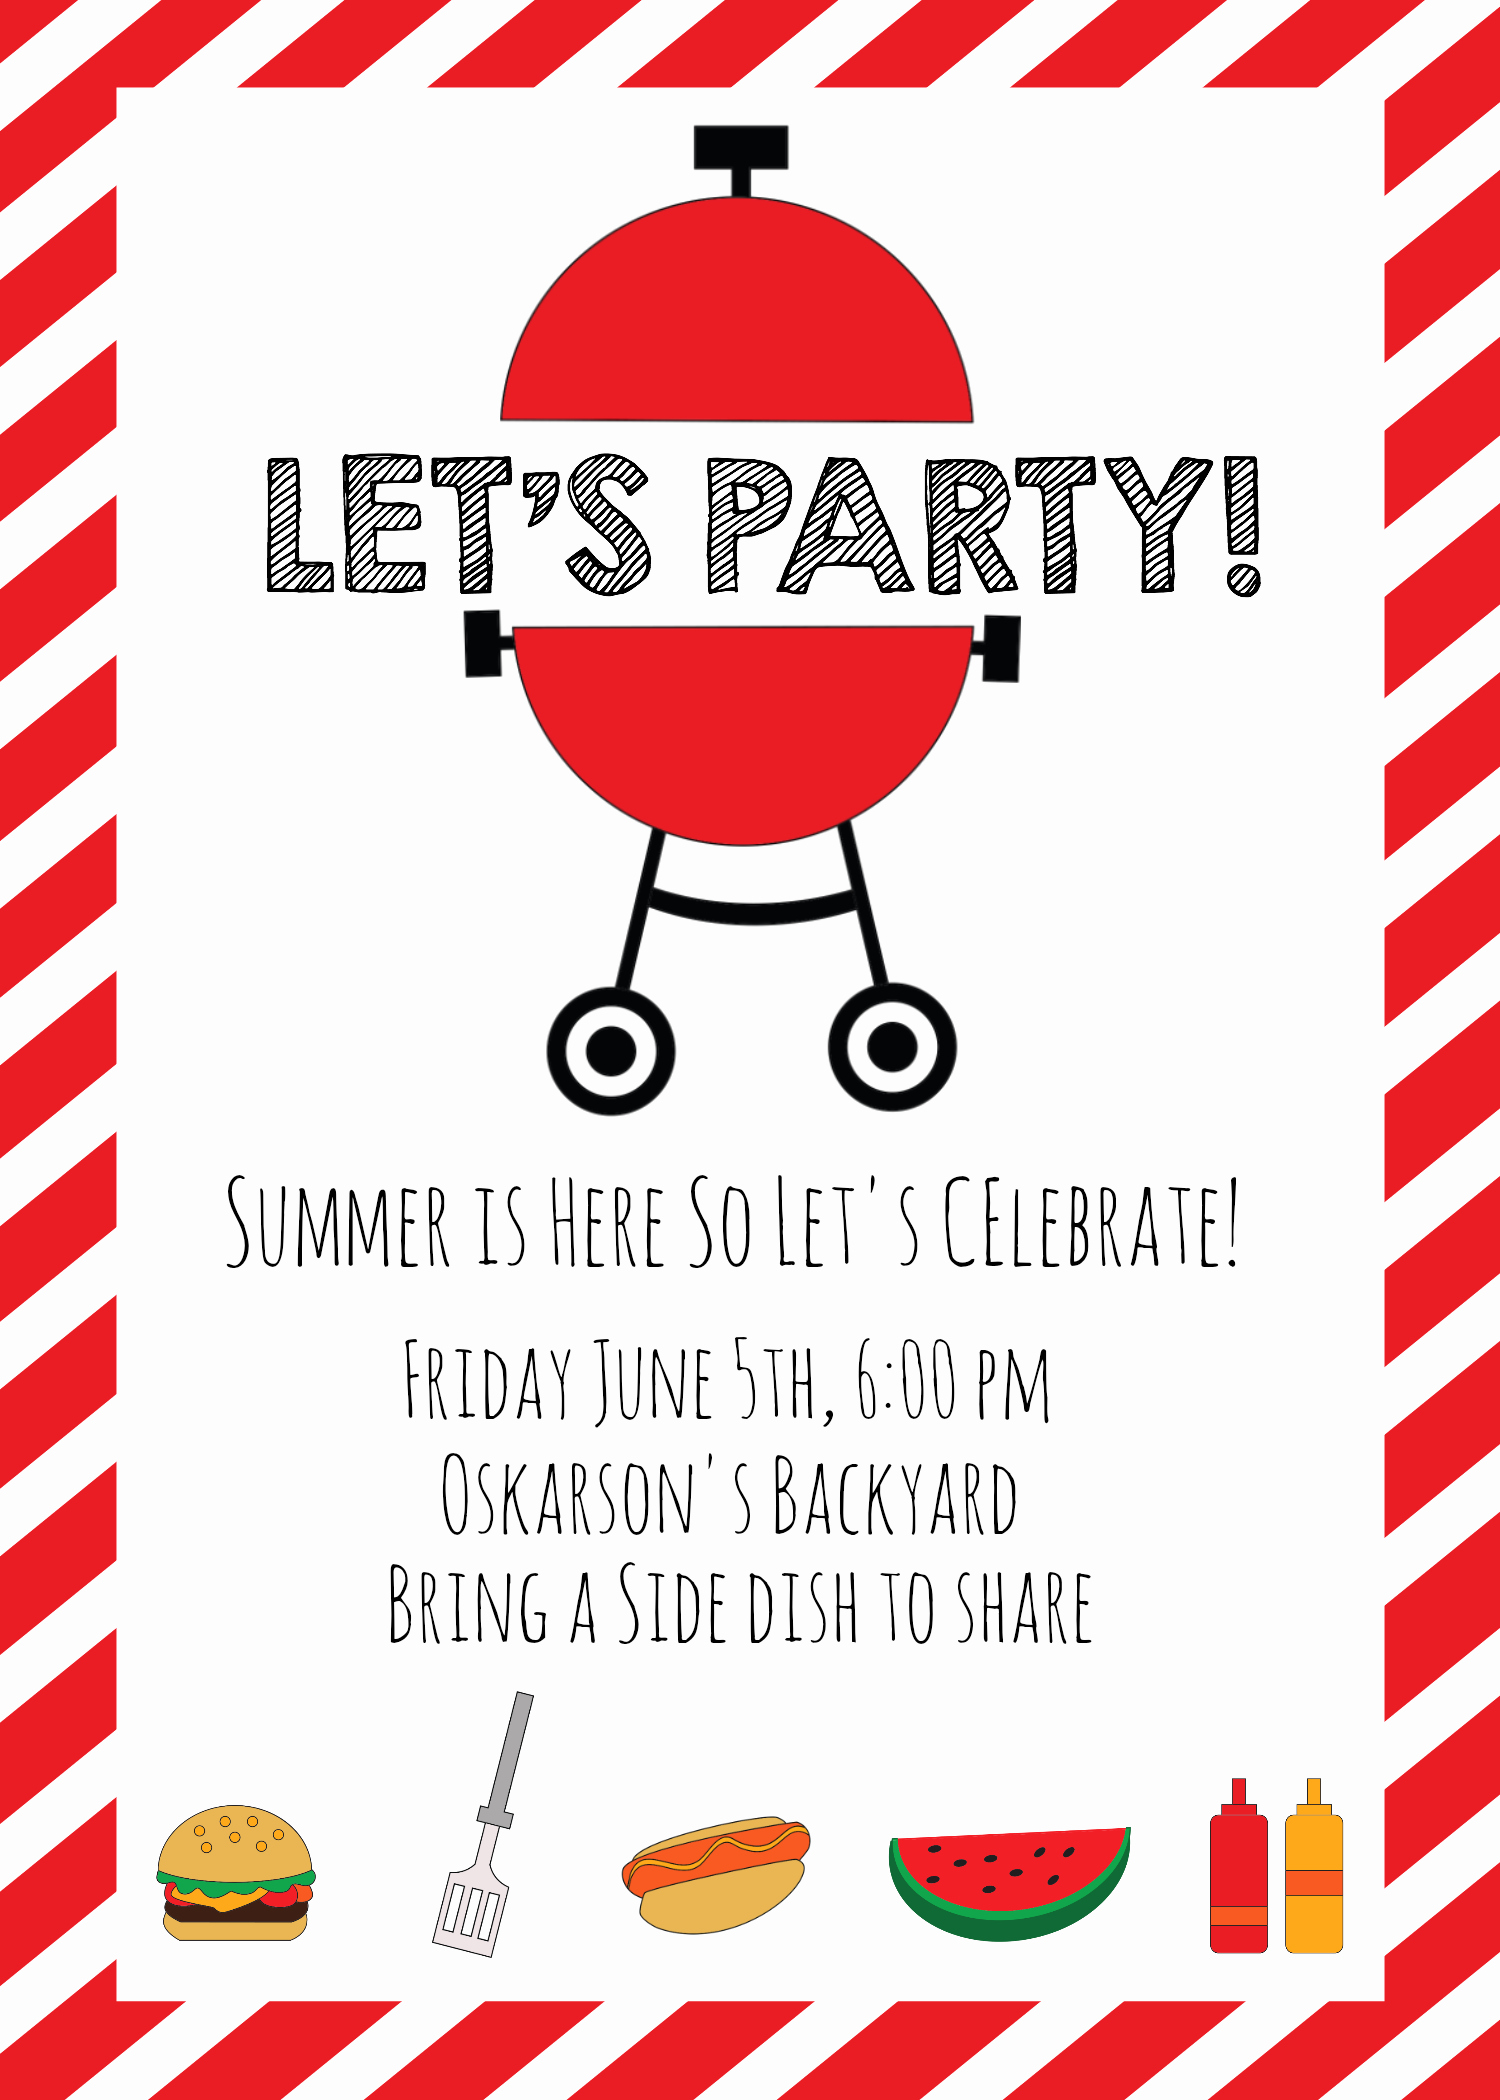 Bbq Party Invitation Wording Awesome Summer Bbq Invitations and Ideas